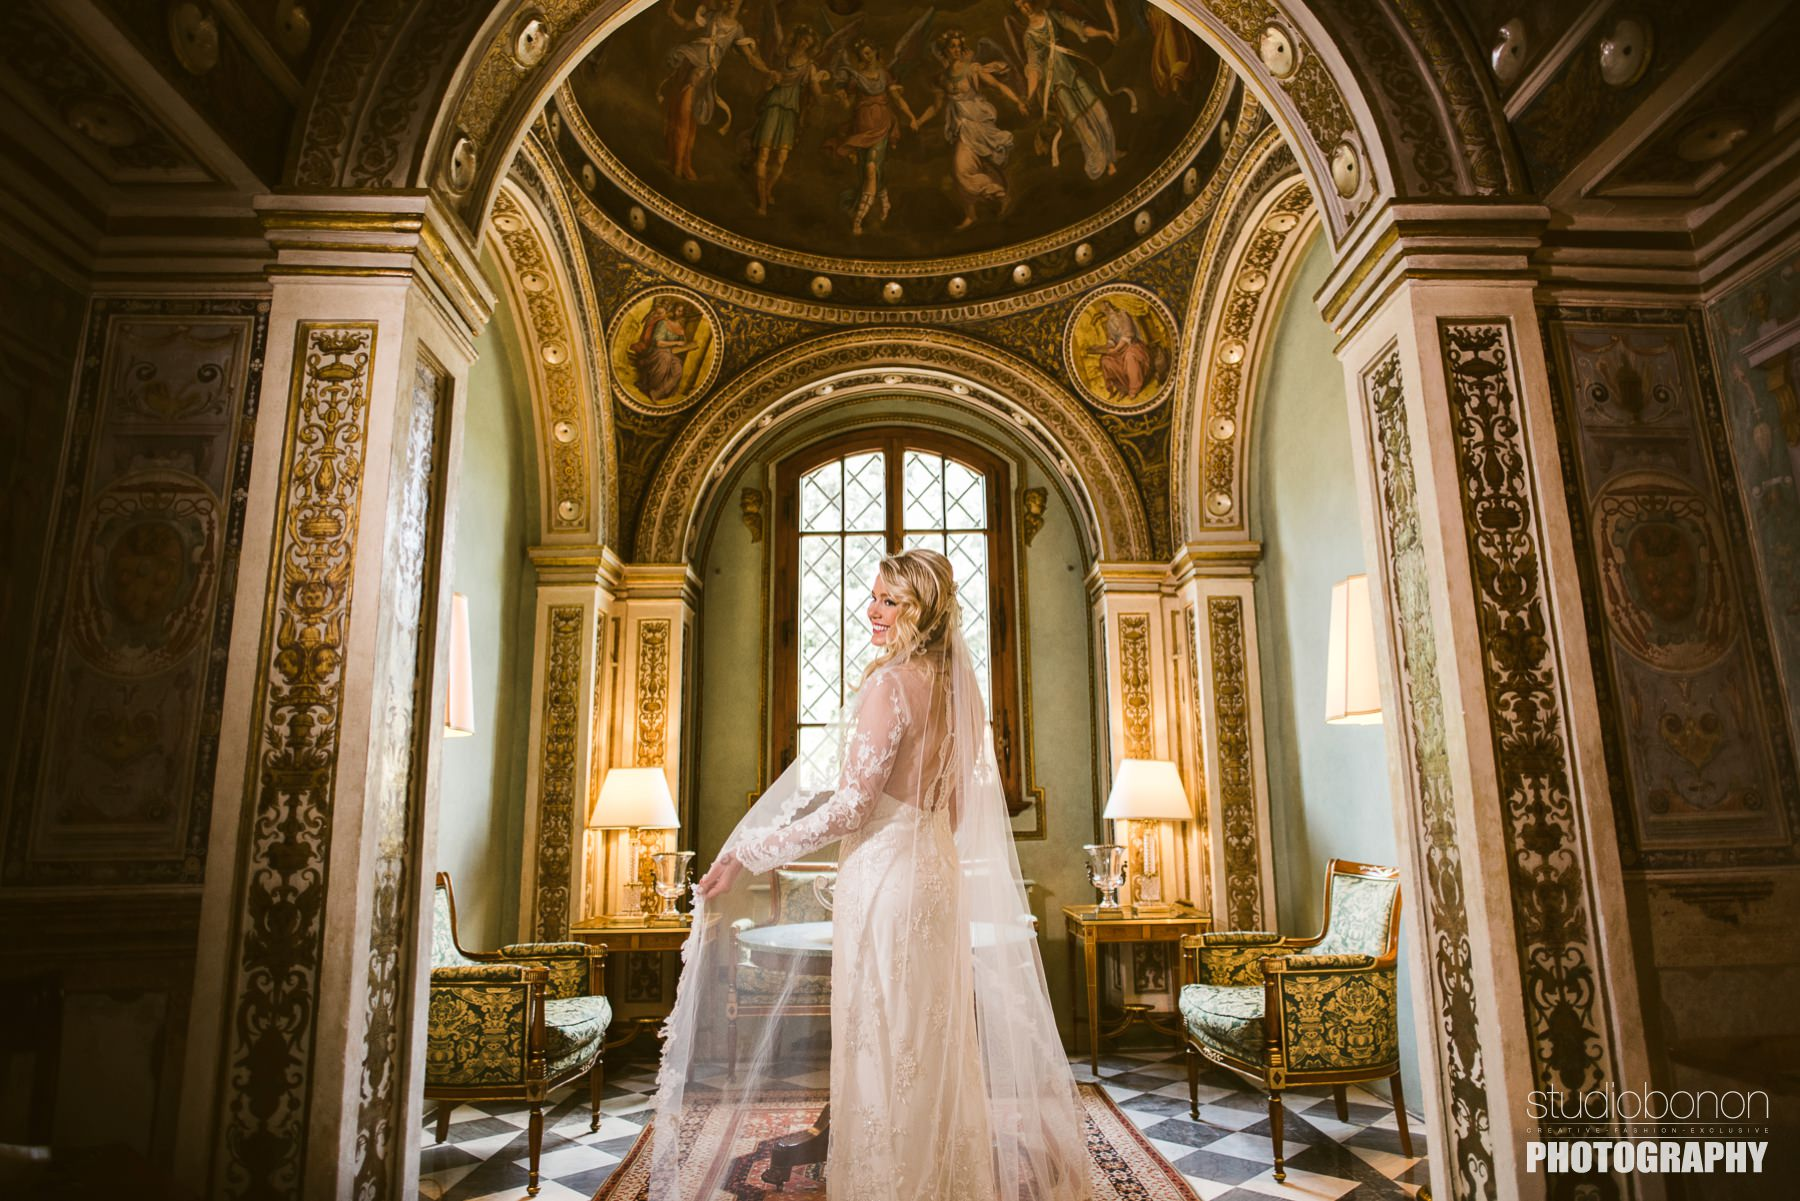 Lovely bride portrait photo into the small chapel at Hotel Four Seasons Florence